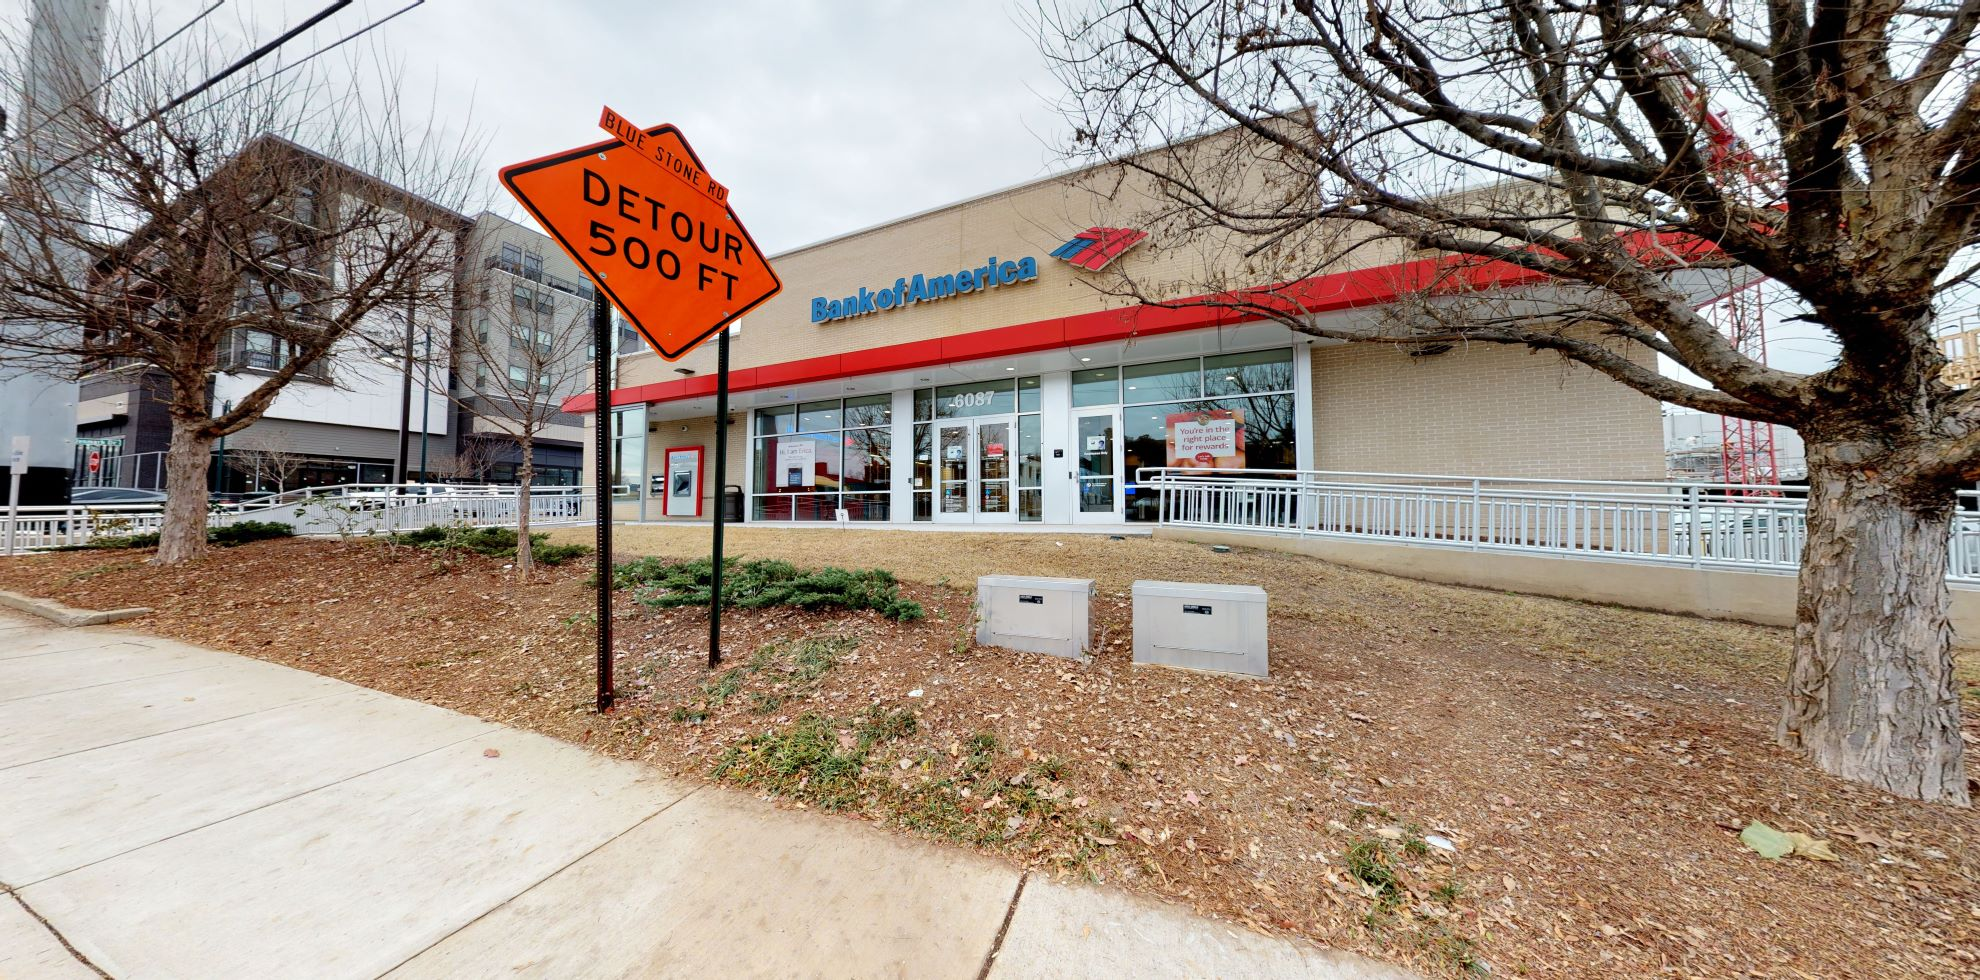 Bank of America financial center with drive-thru ATM   6087 Roswell Rd, Atlanta, GA 30328